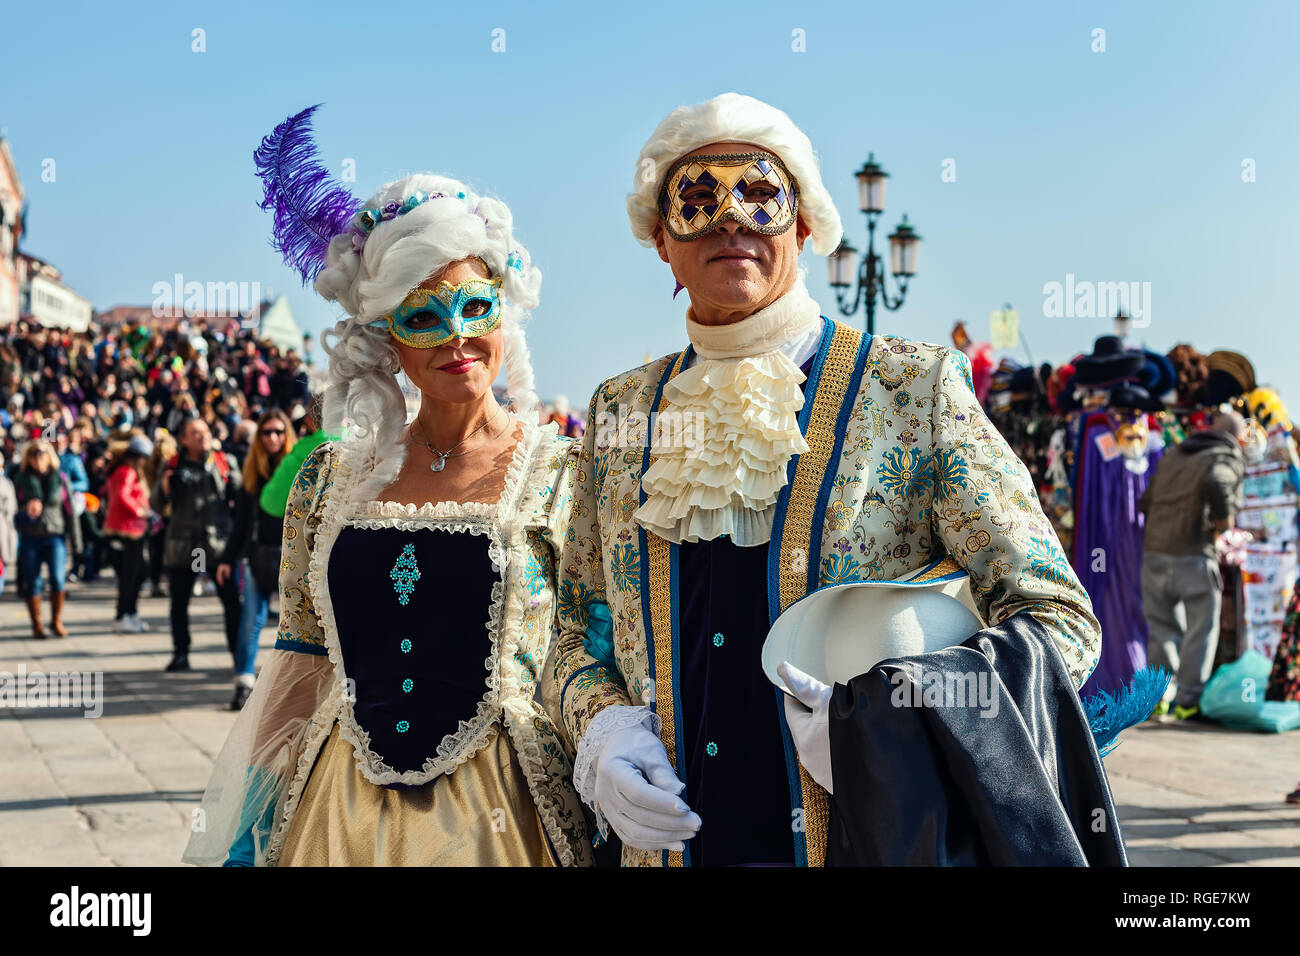 Couple of unidentified participants wear vintage colorful costumes and masks during famous traditional Carnival in Venice, Italy. Stock Photo